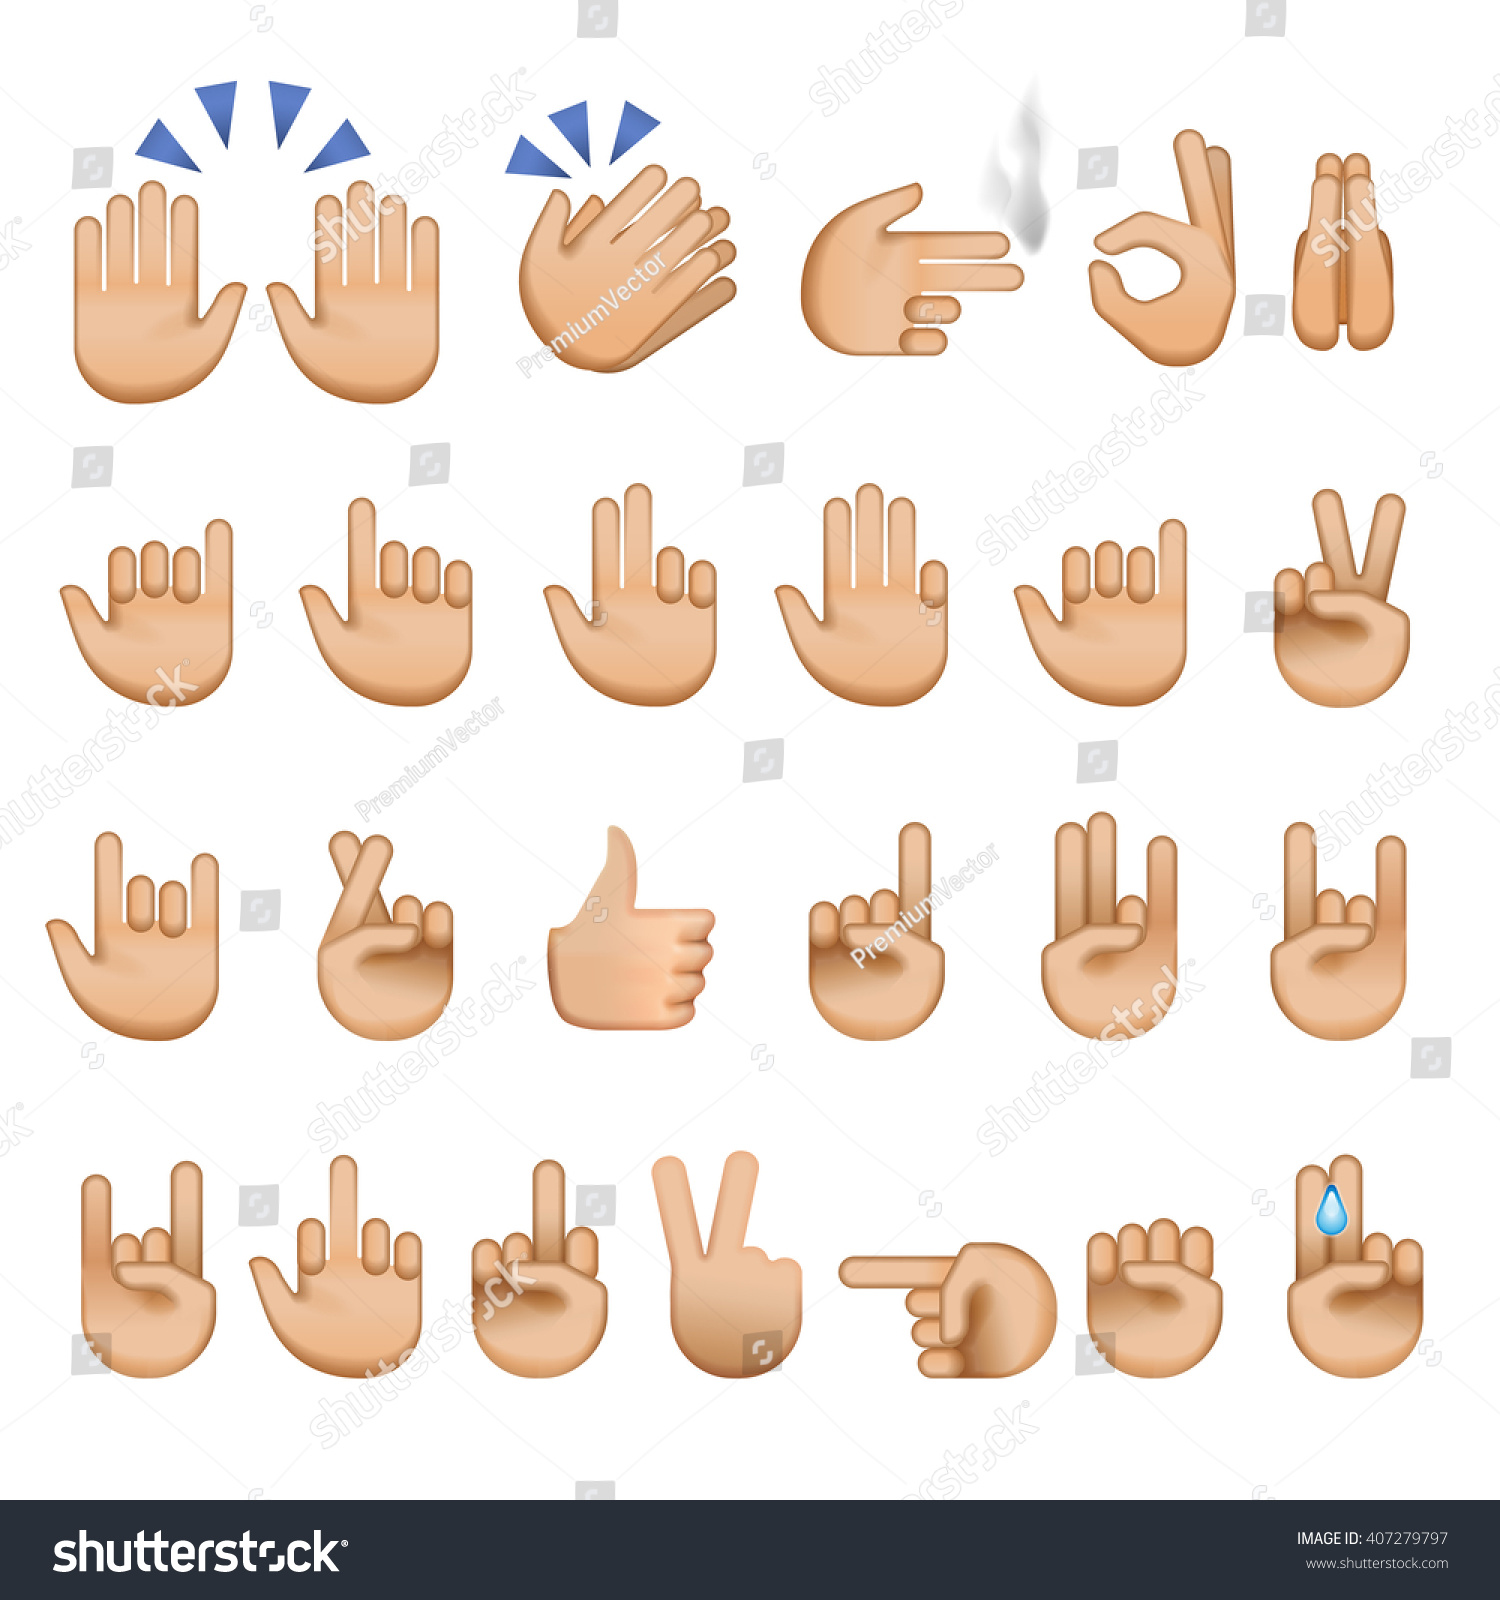 the multiple meanings of gestures • in gestures, meanings are global: the parts of the gesture derive their meanings from the meaning of the gesture as a whole in multiple ways.